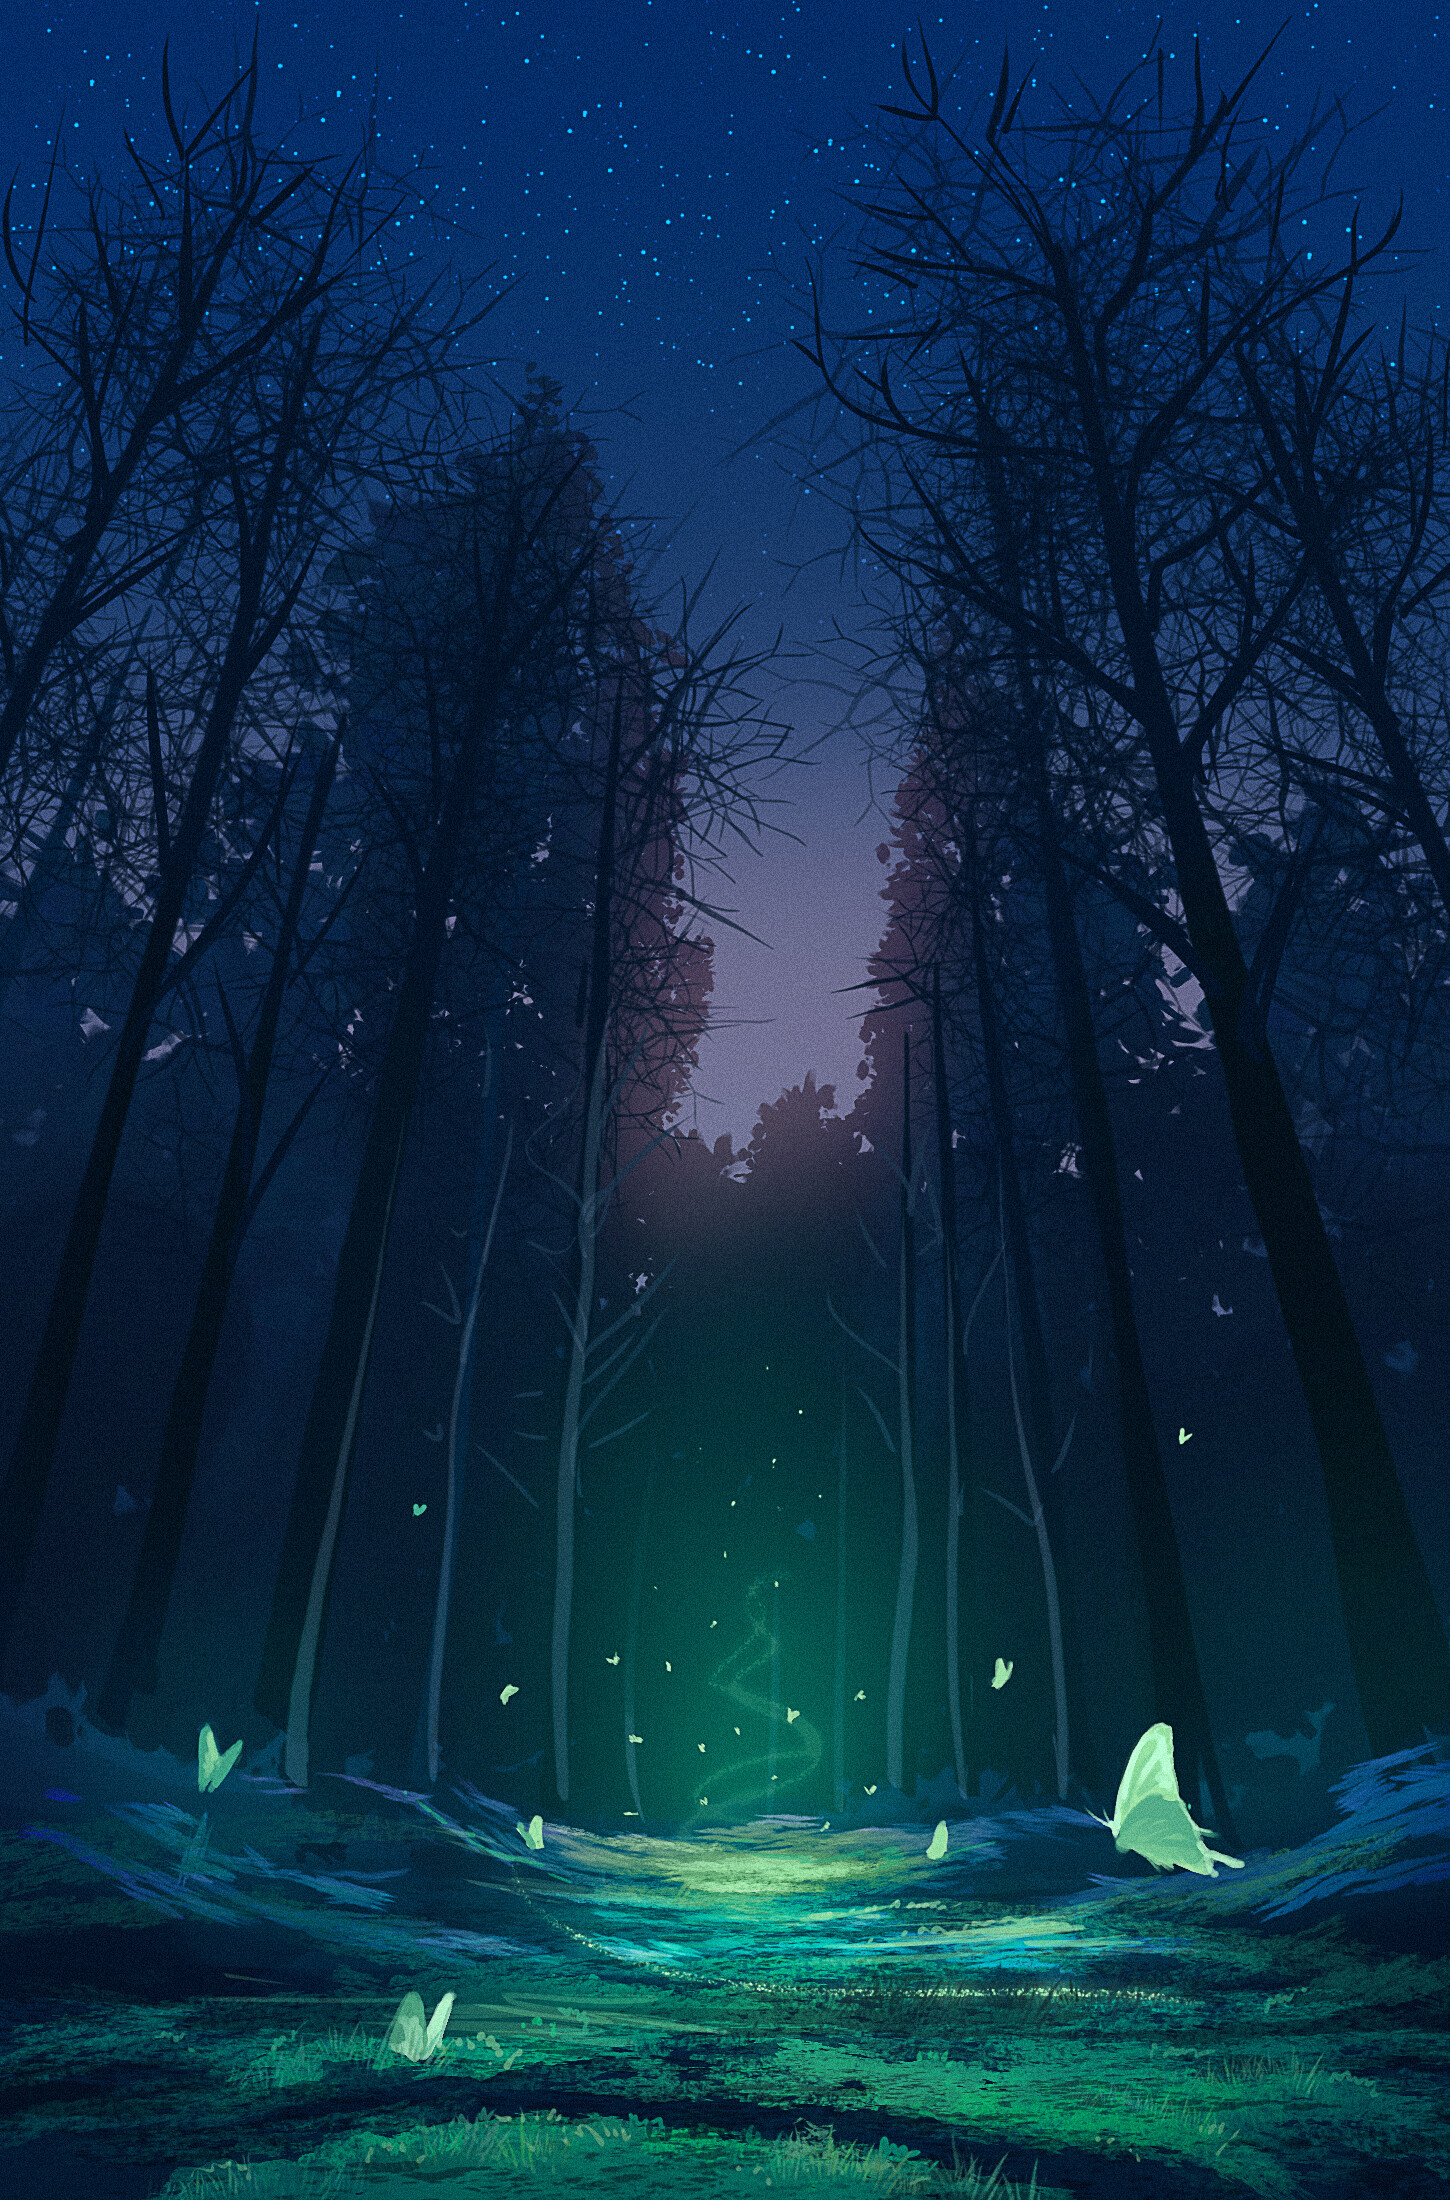 67940 download wallpaper Forest, Magic, Butterflies, Fantasy, Art screensavers and pictures for free